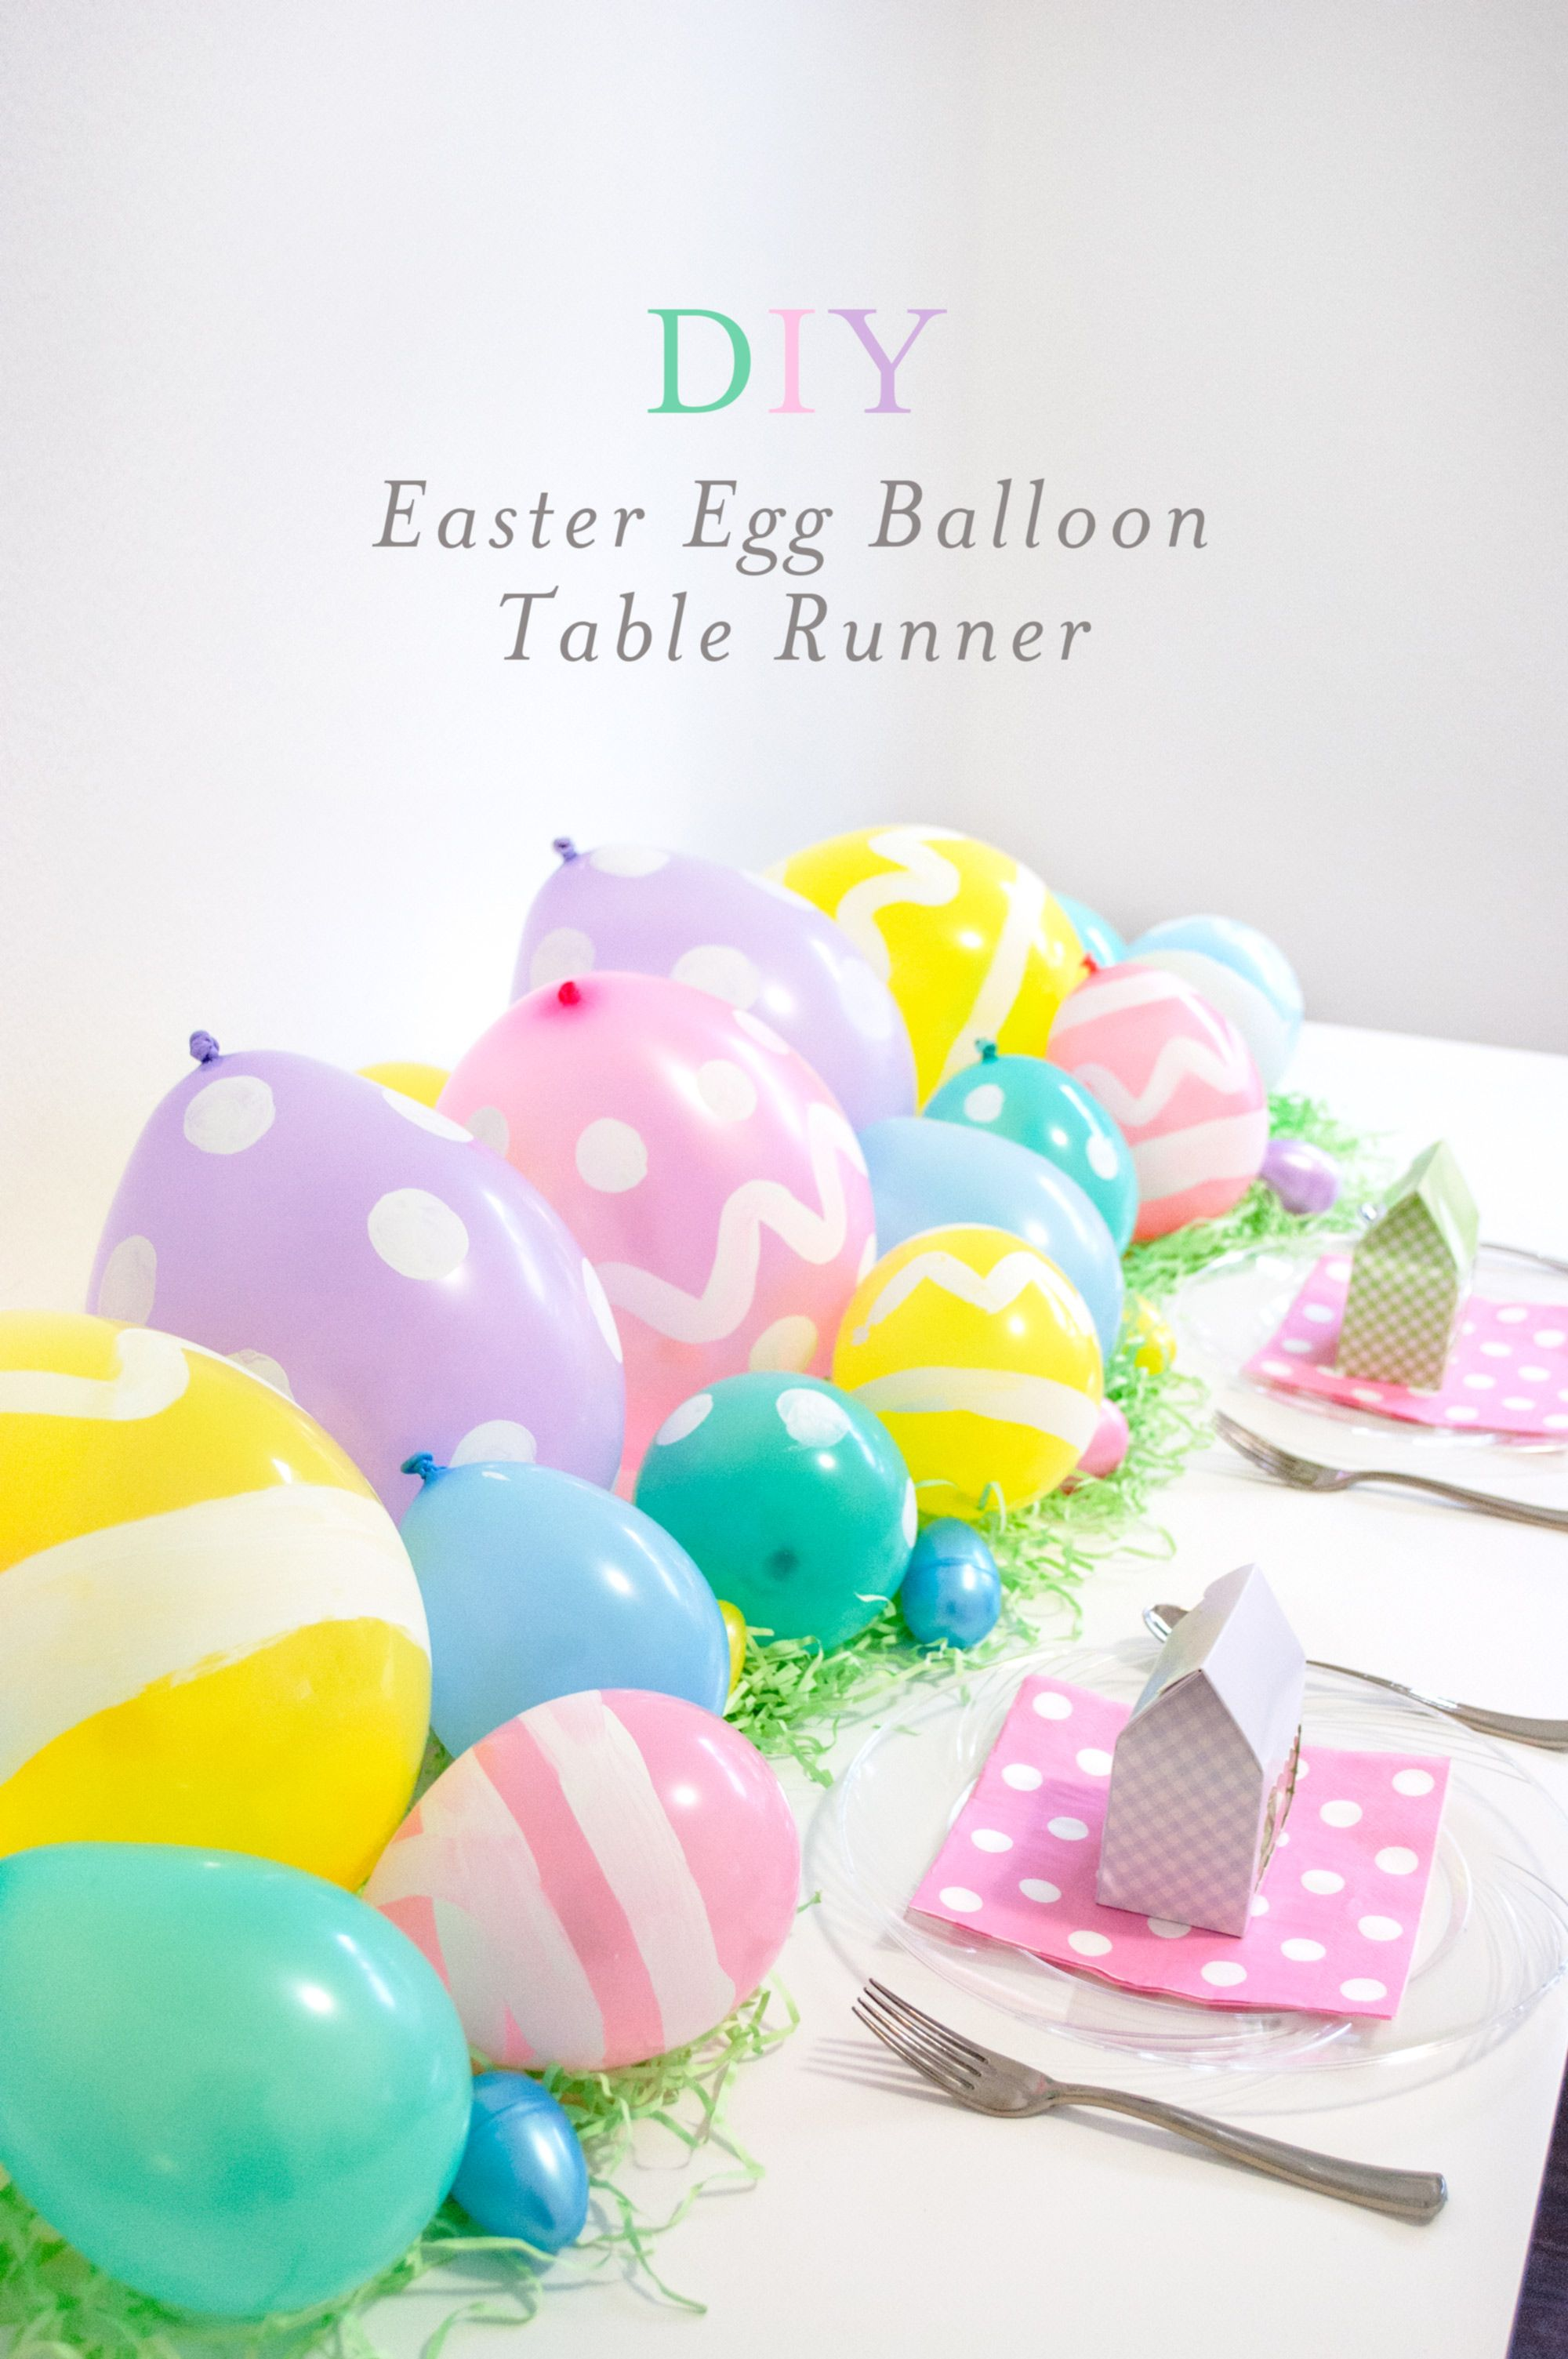 A Super Simple Easter DIY With Big Impact Egg Balloon Table Runner For Your